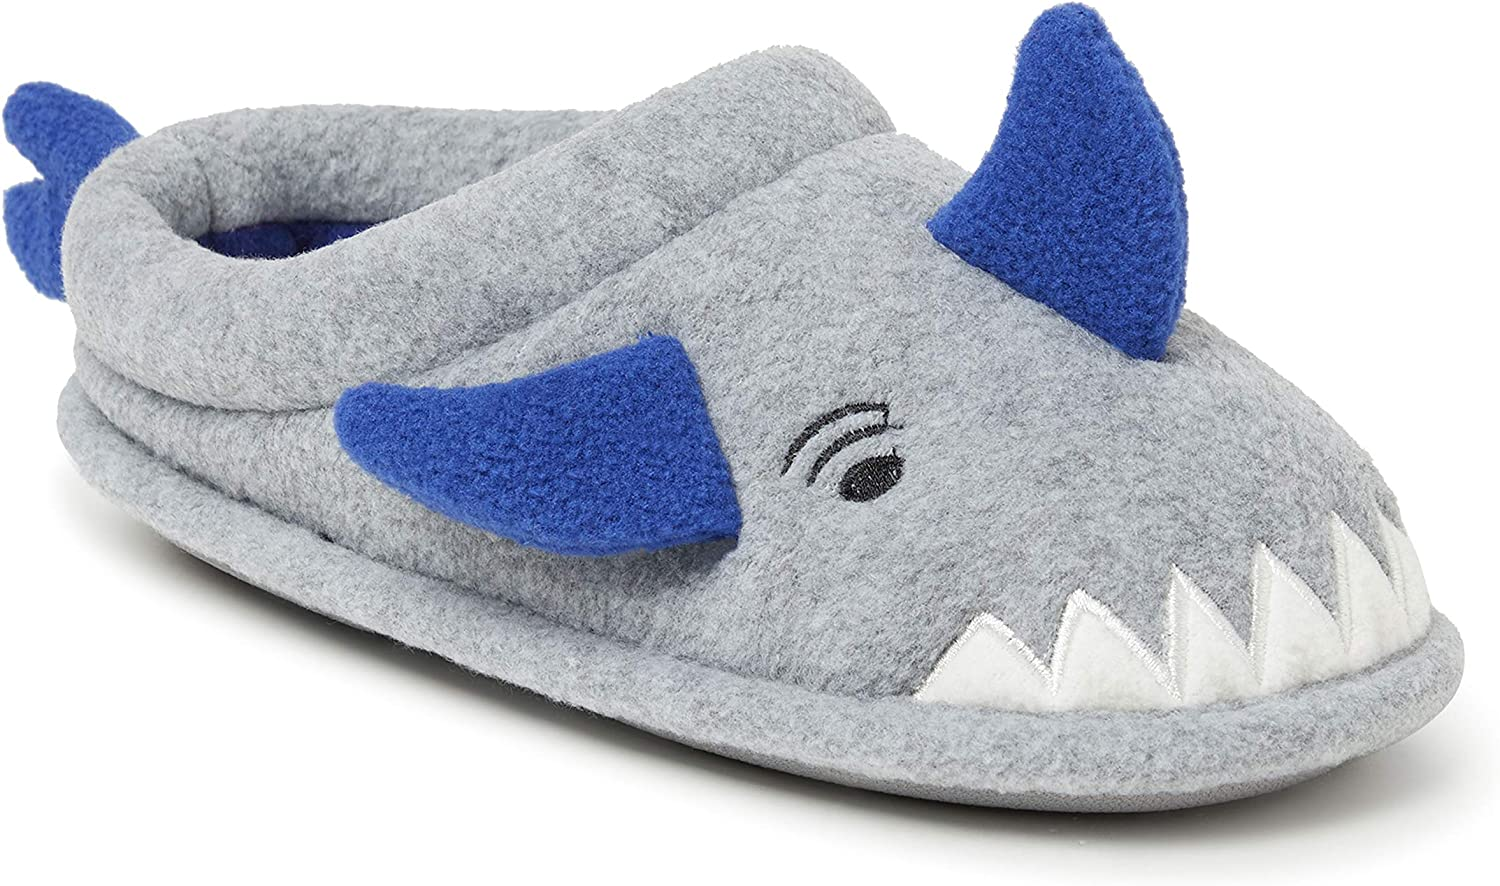 Top 7 Chacos Shark